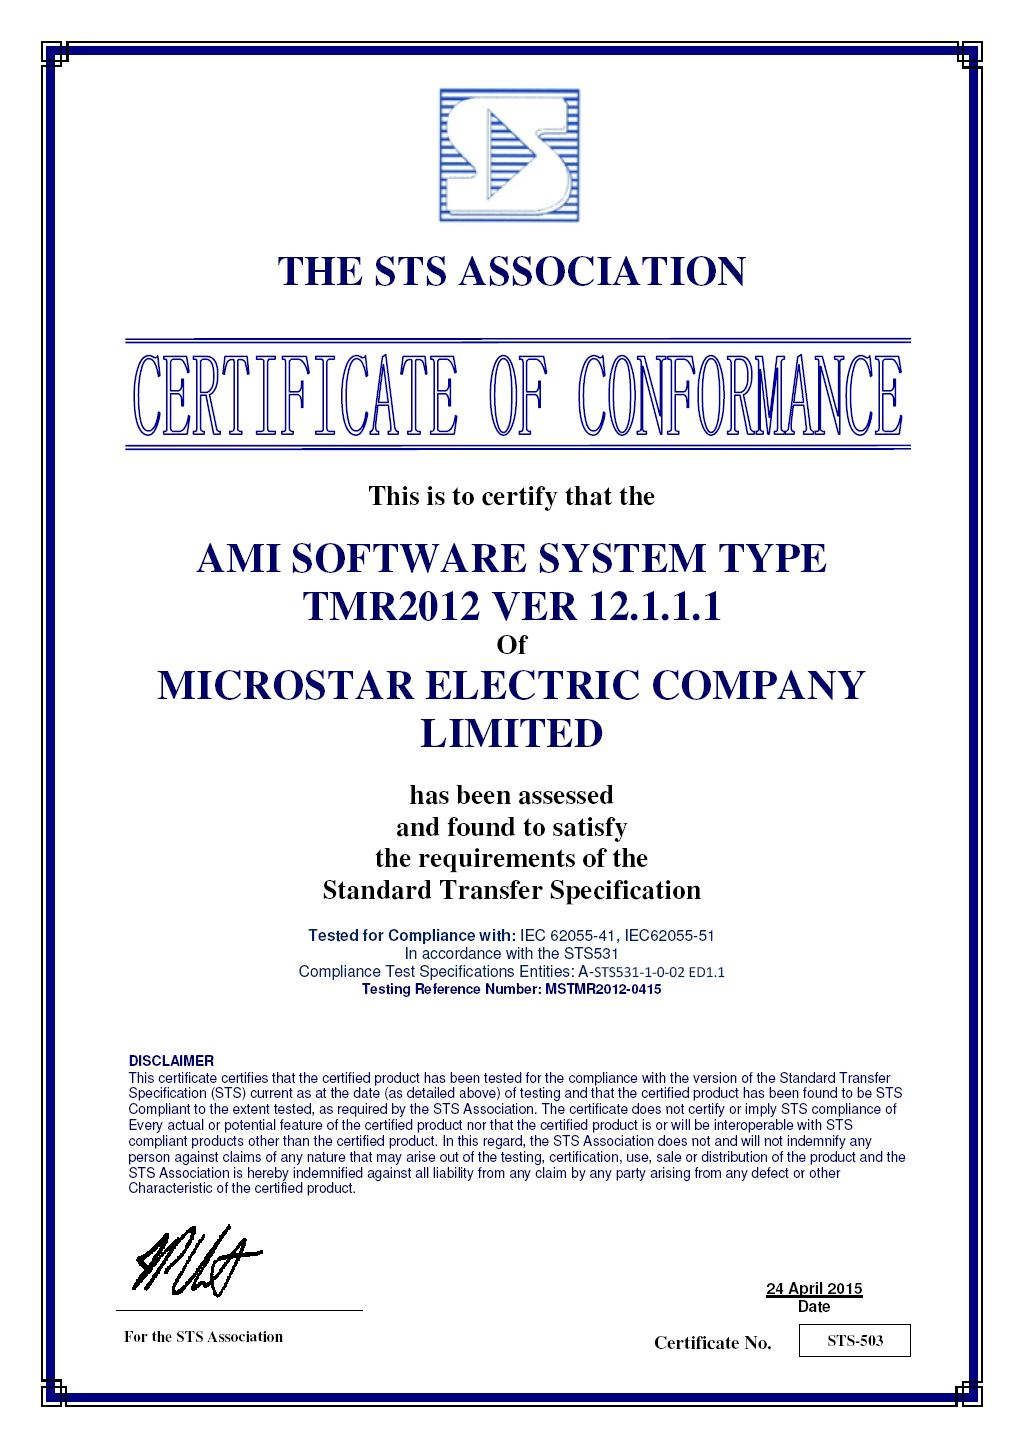 TMR-2012's Vending System STS Certificate